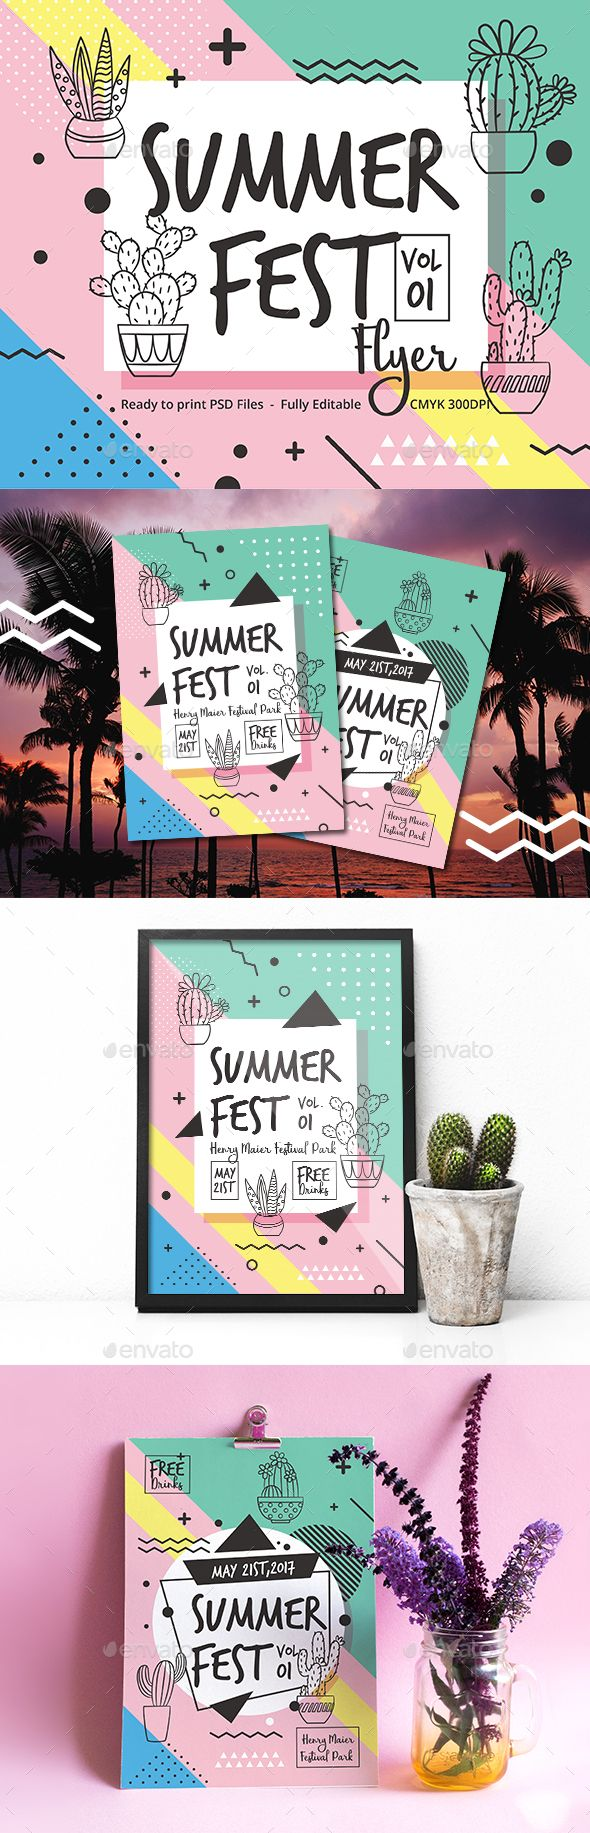 Summer Fest Flyer — Photoshop PSD #flyer #print • Download ➝ https://graphicriver.net/item/summer-fest-flyer/19818228?ref=pxcr